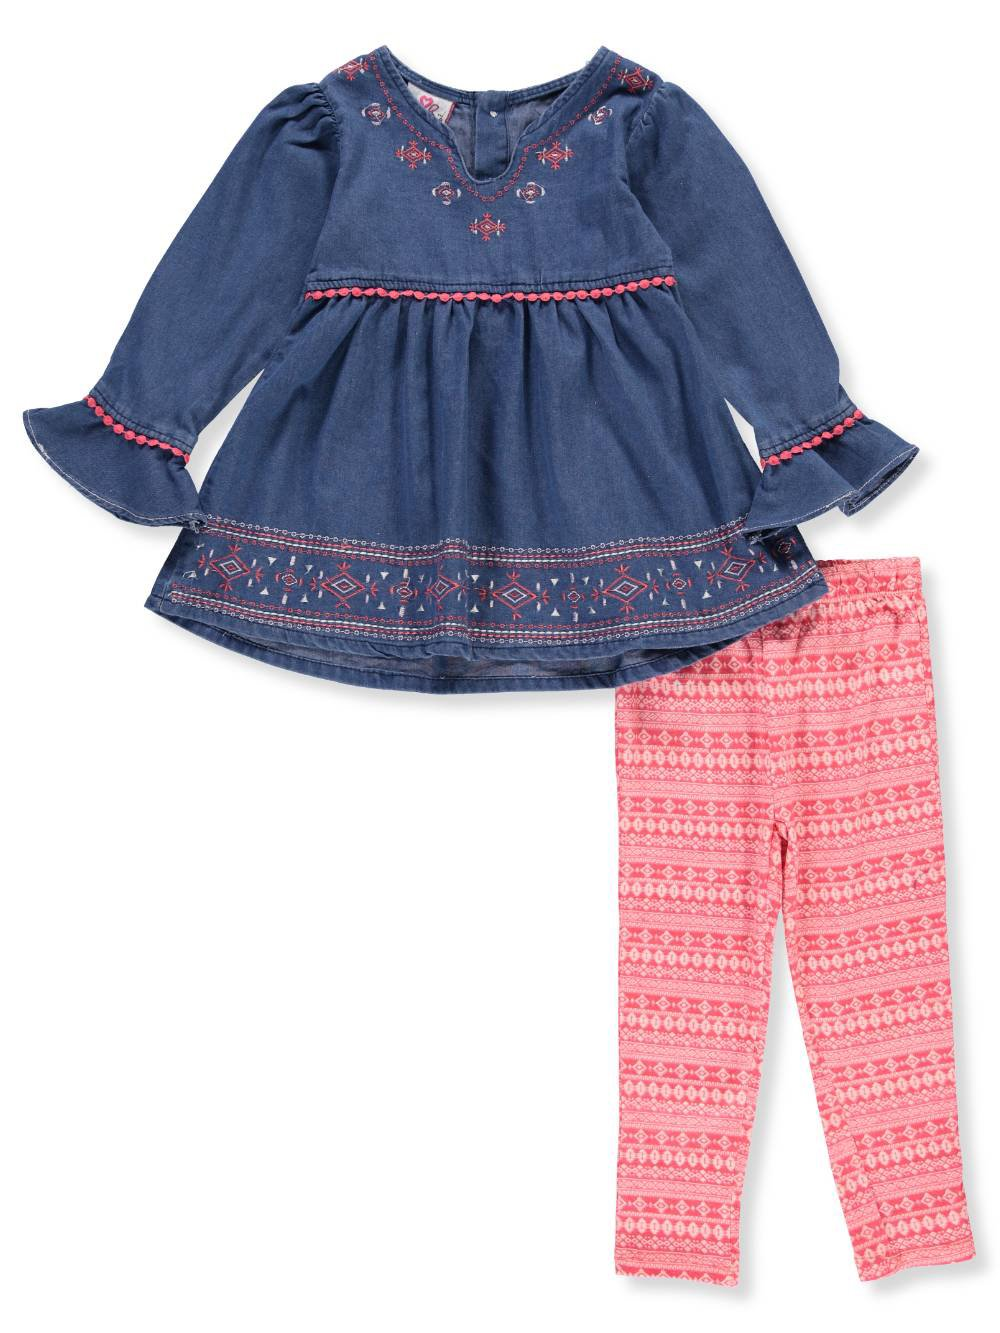 Real Love Girls' 2-Piece Leggings Set Outfit